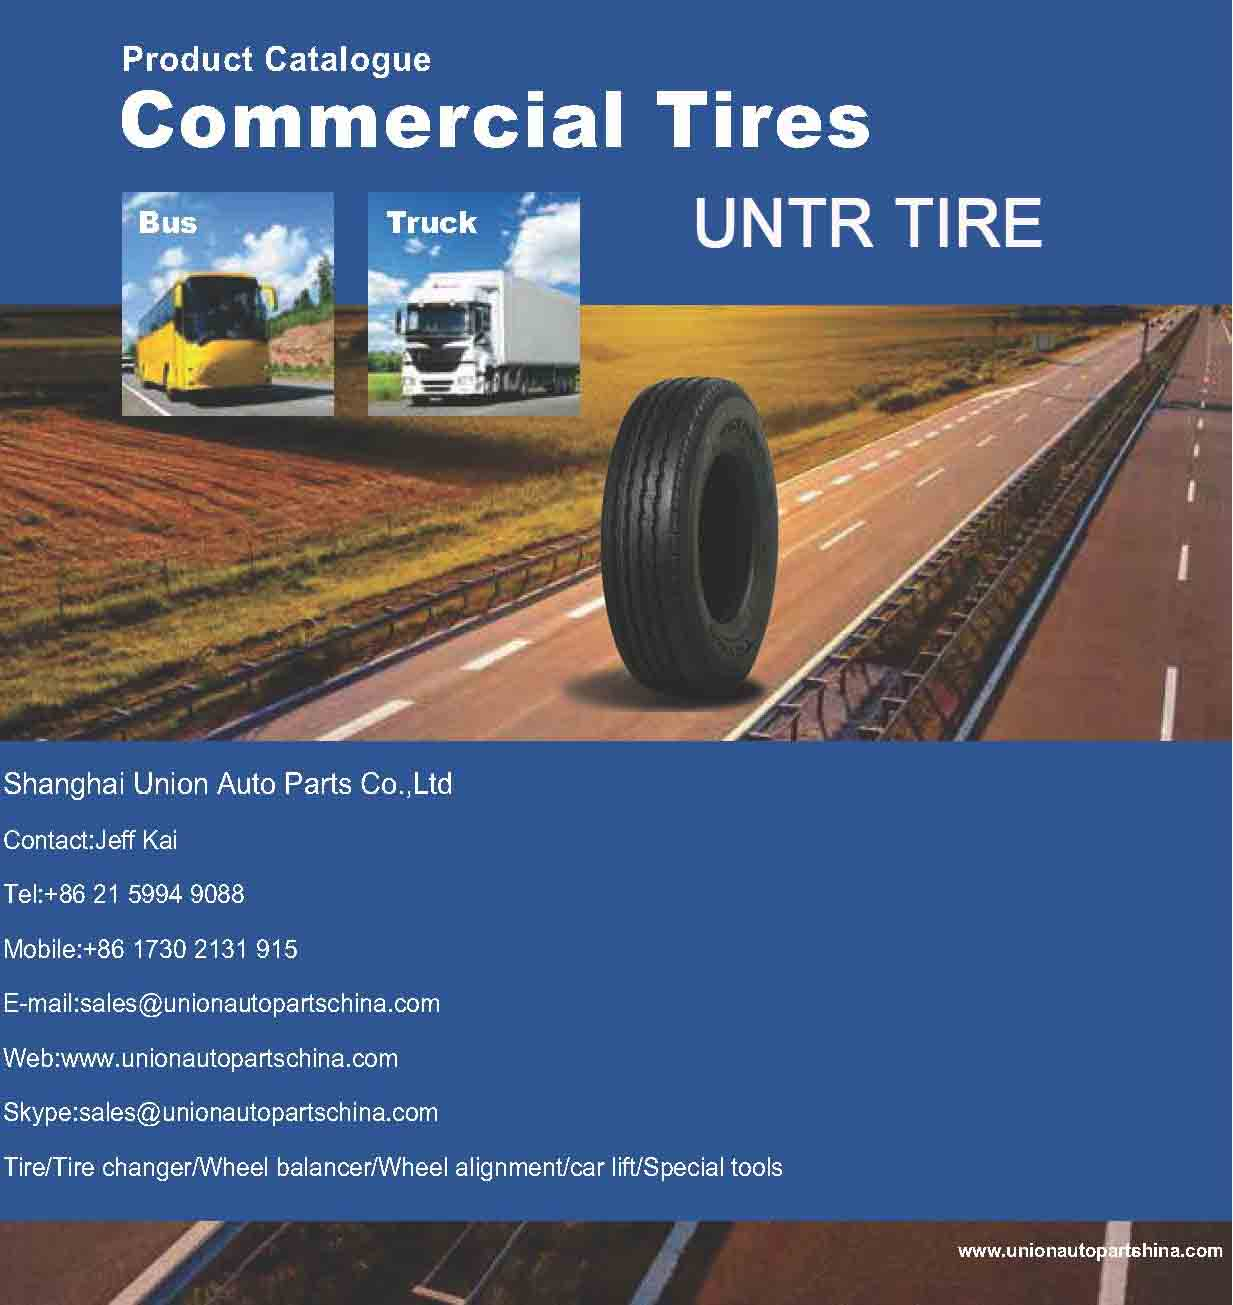 Commercial Tire Catalogue